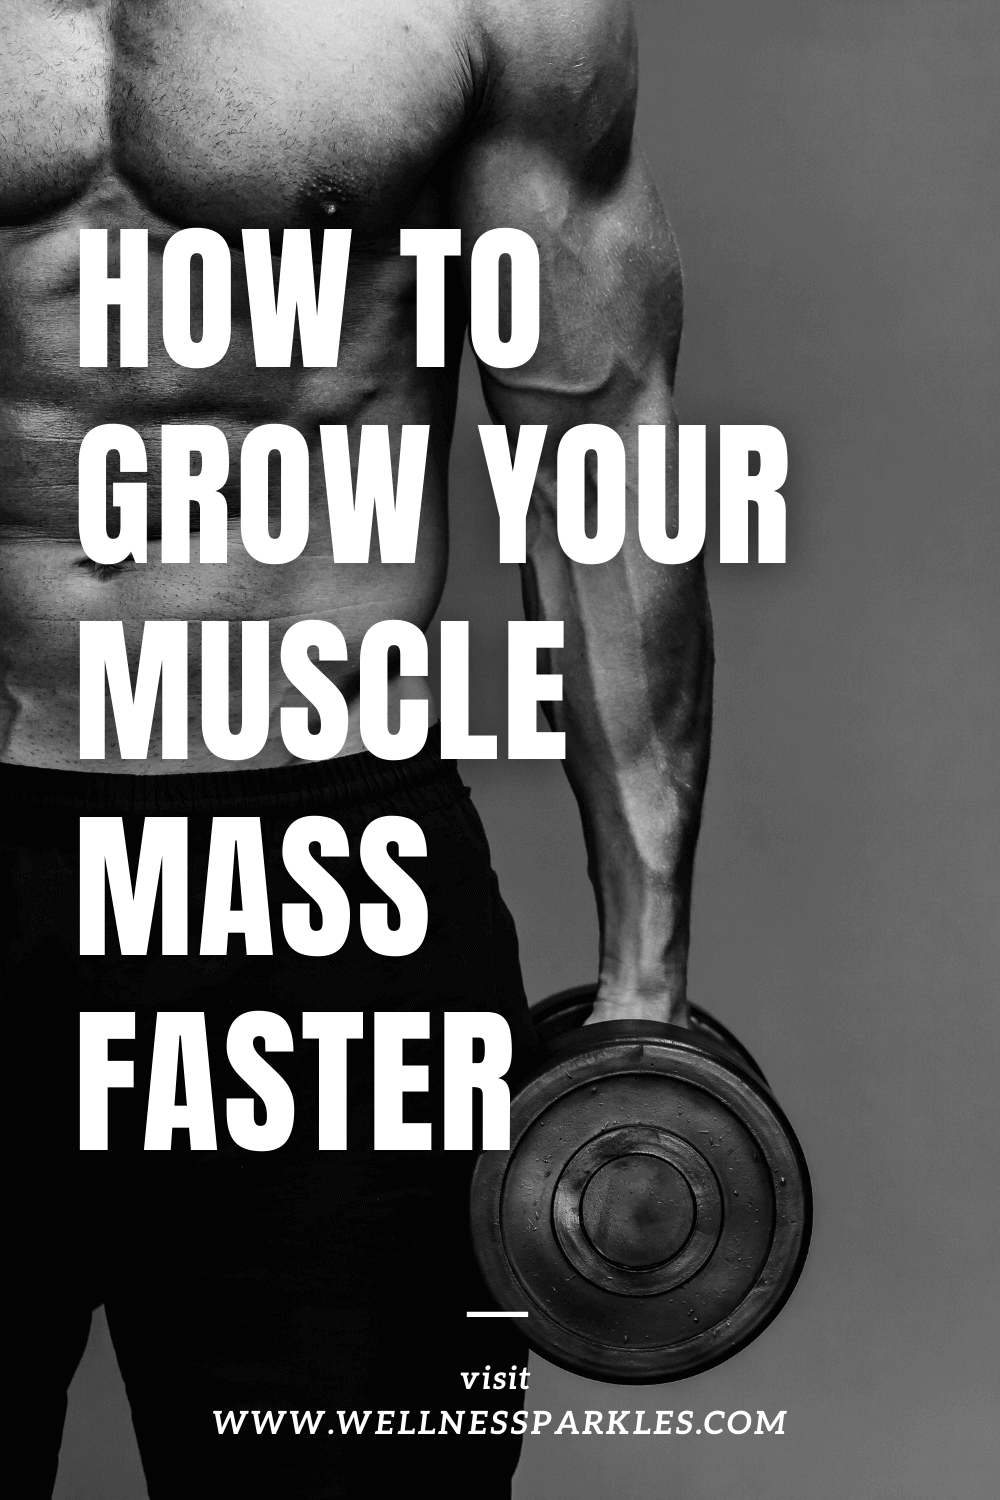 How to gain muscle mass faster